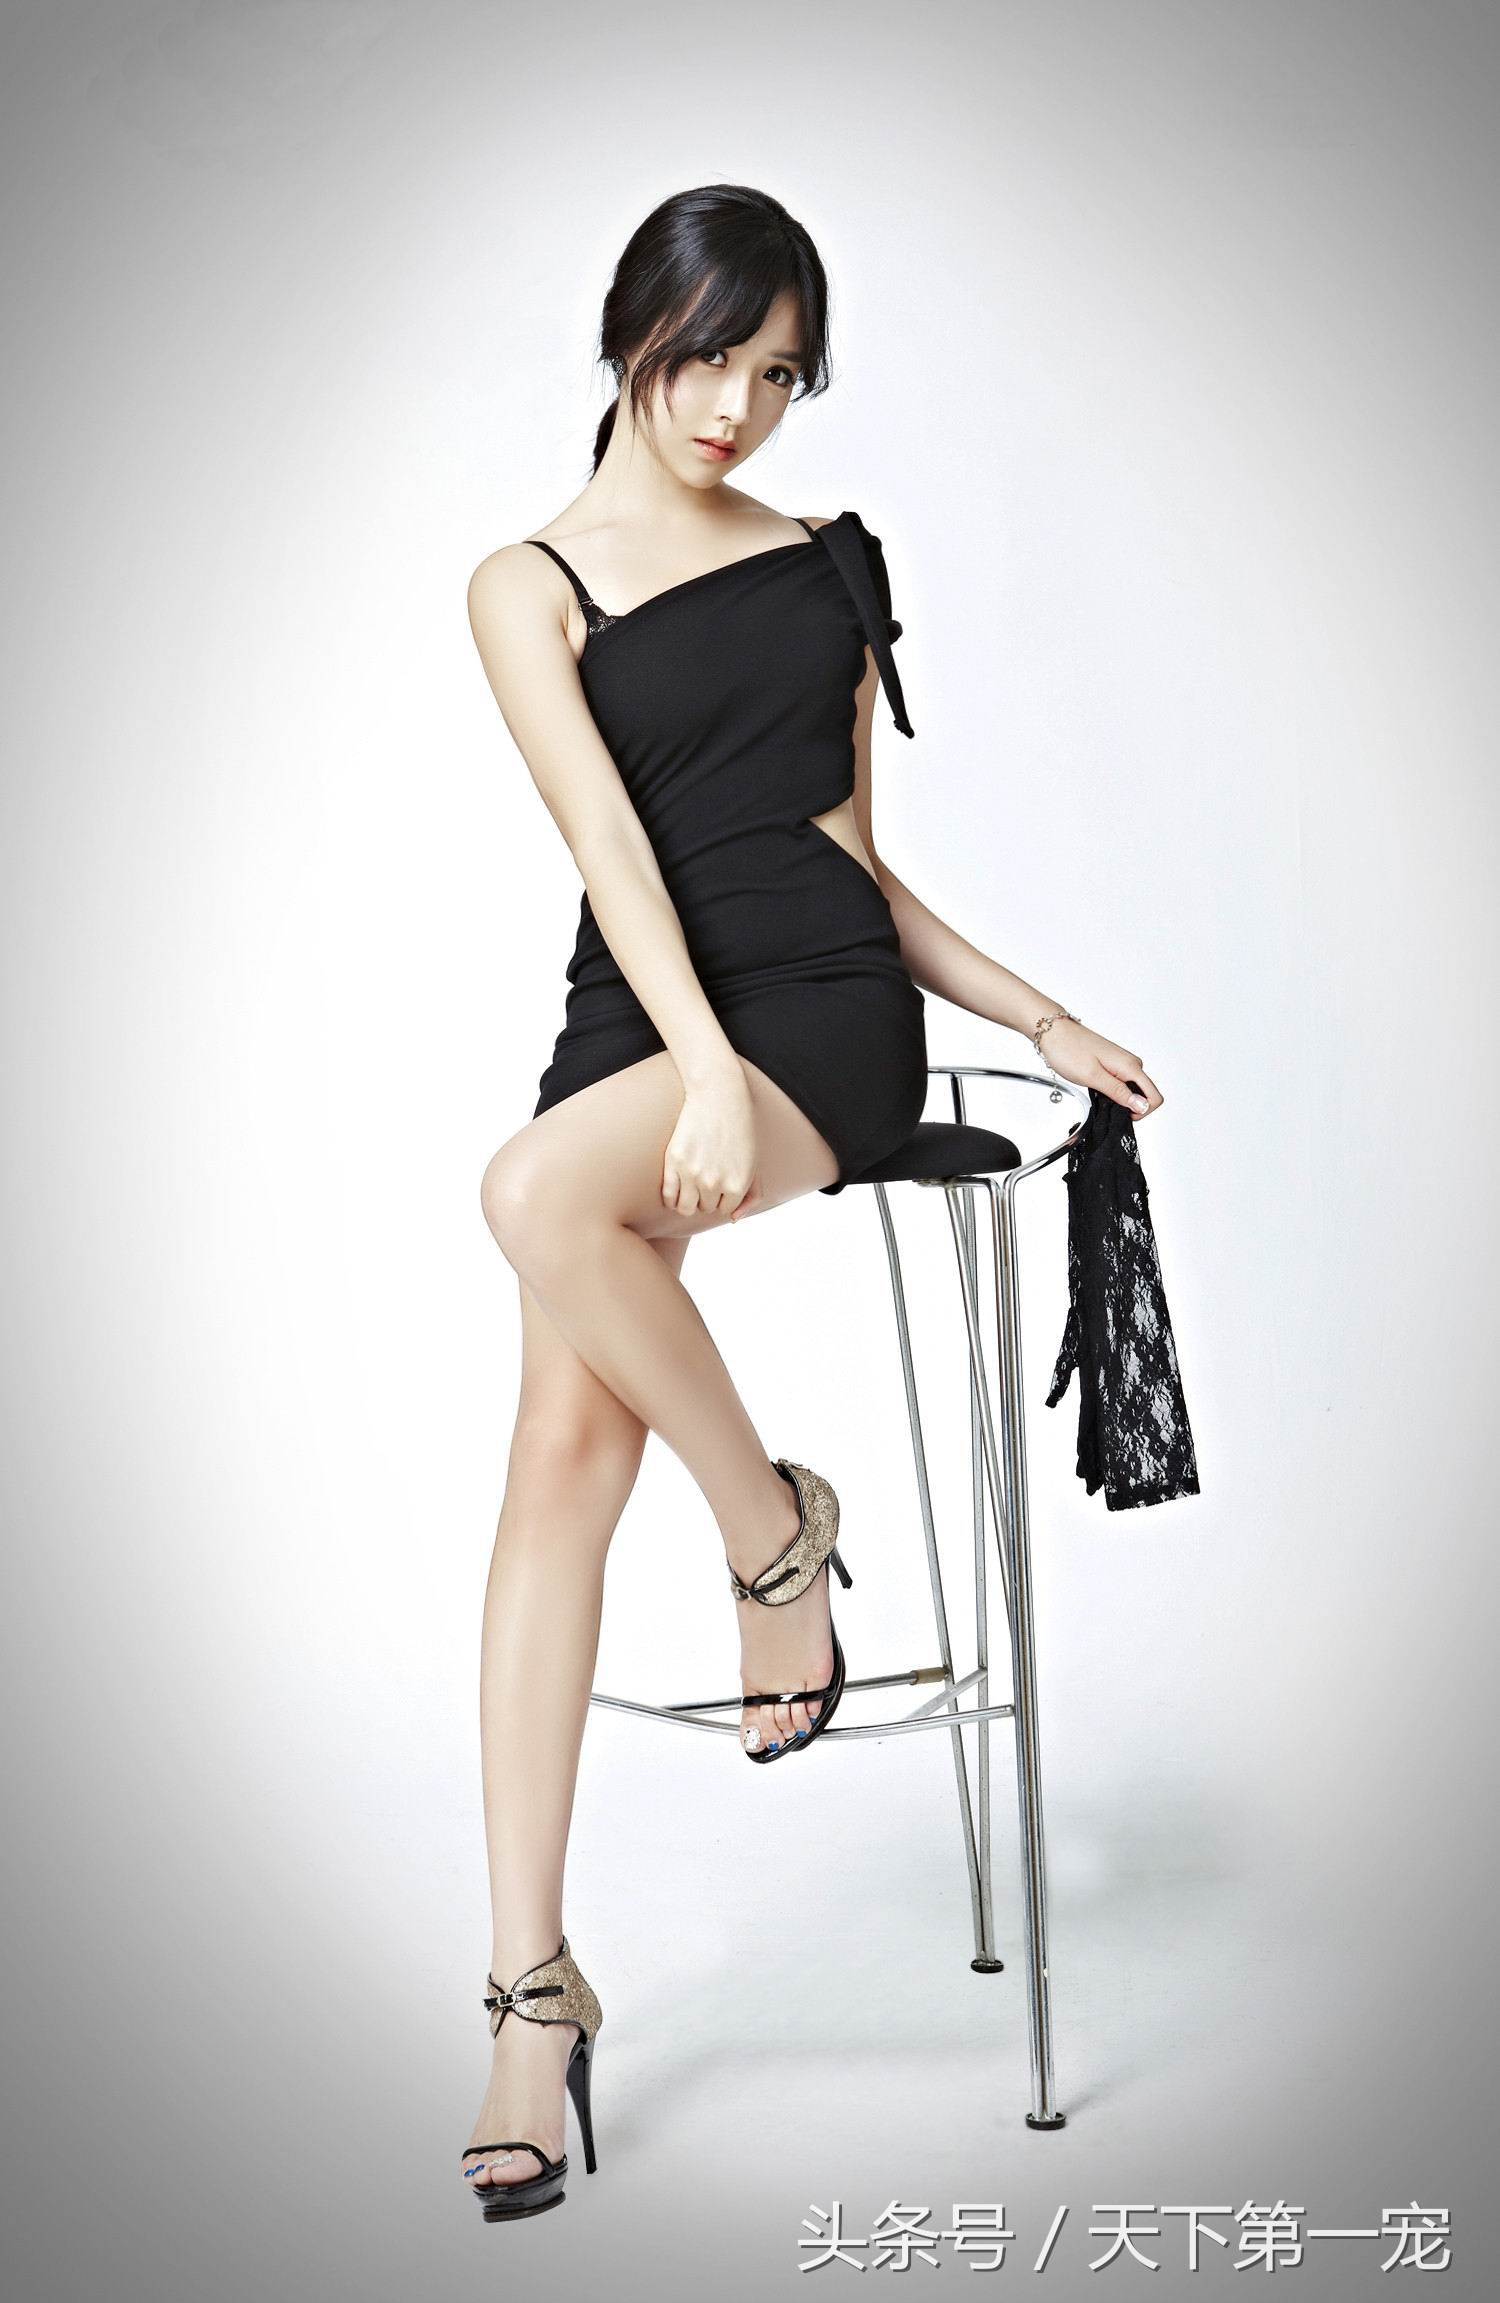 hot Korean actress Cheon Eh Seul